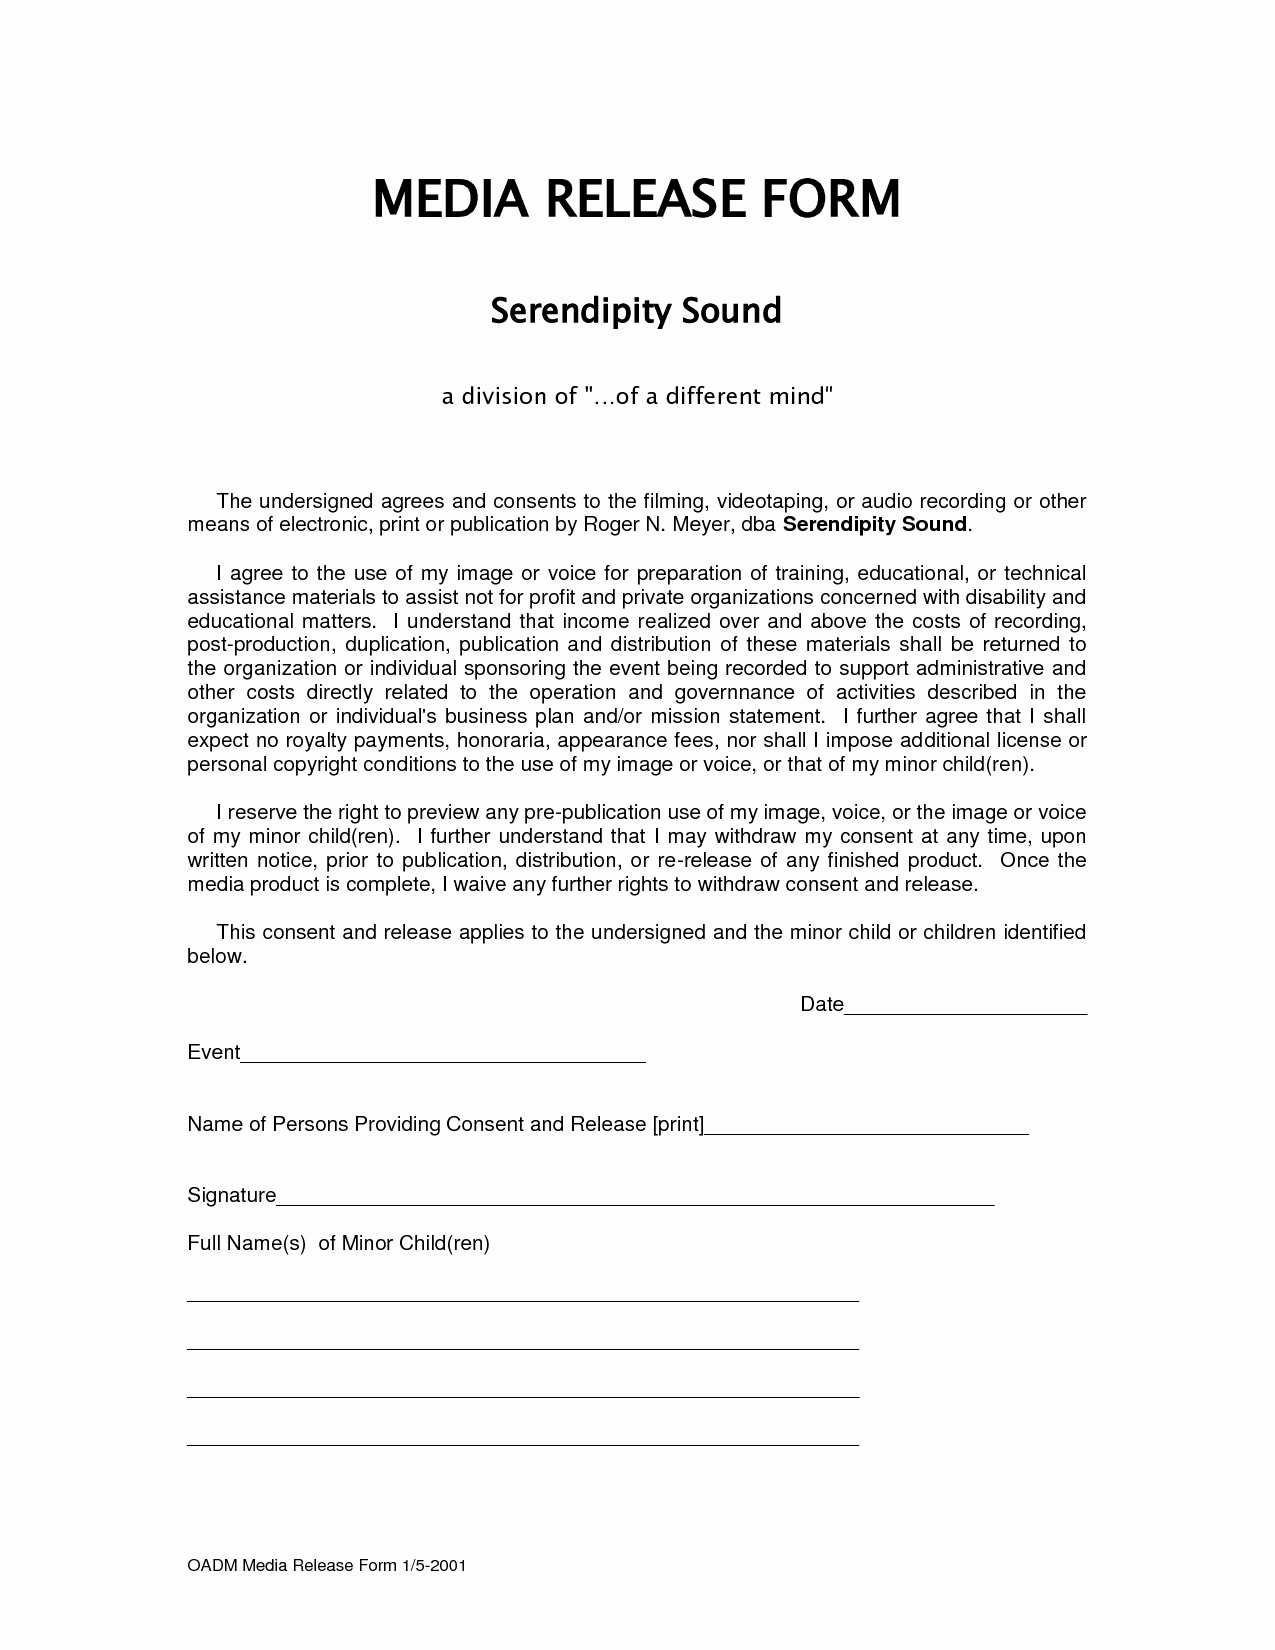 Media Release forms Template Best Of form Media Release form